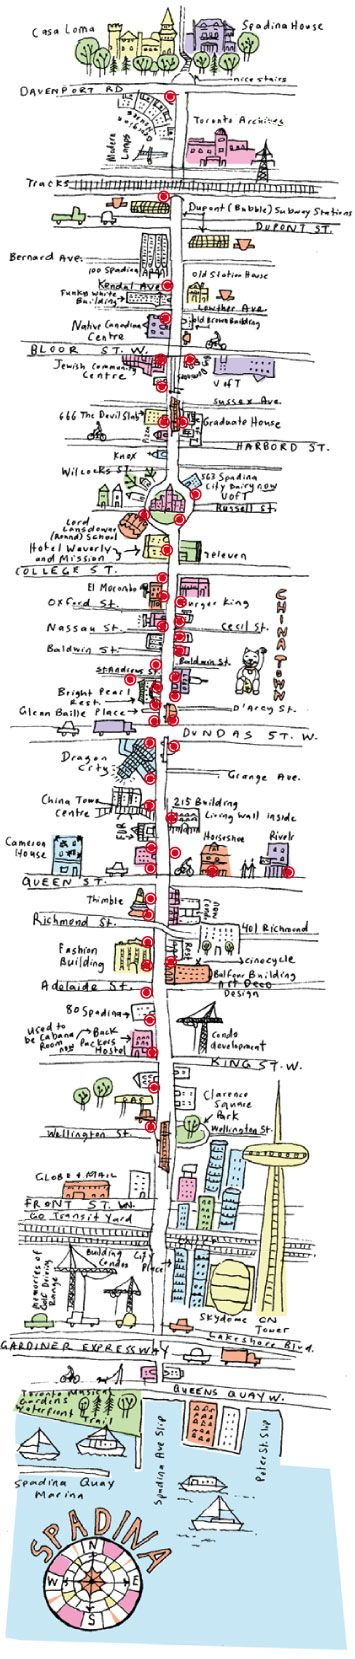 One of the coolest drawings ever of Spadina avenue in Toronto.